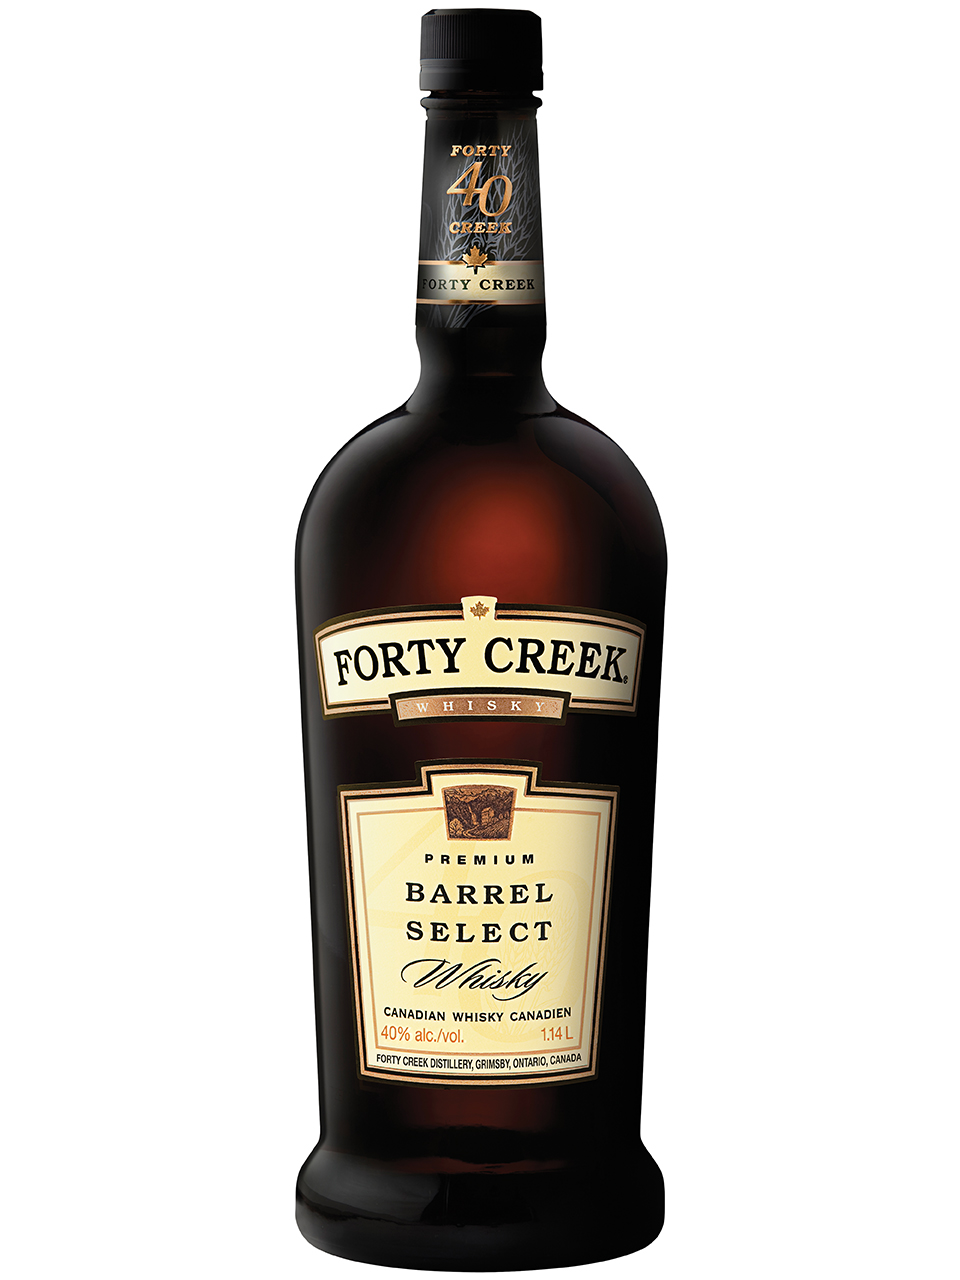 Forty Creek Barrel Select Whisky